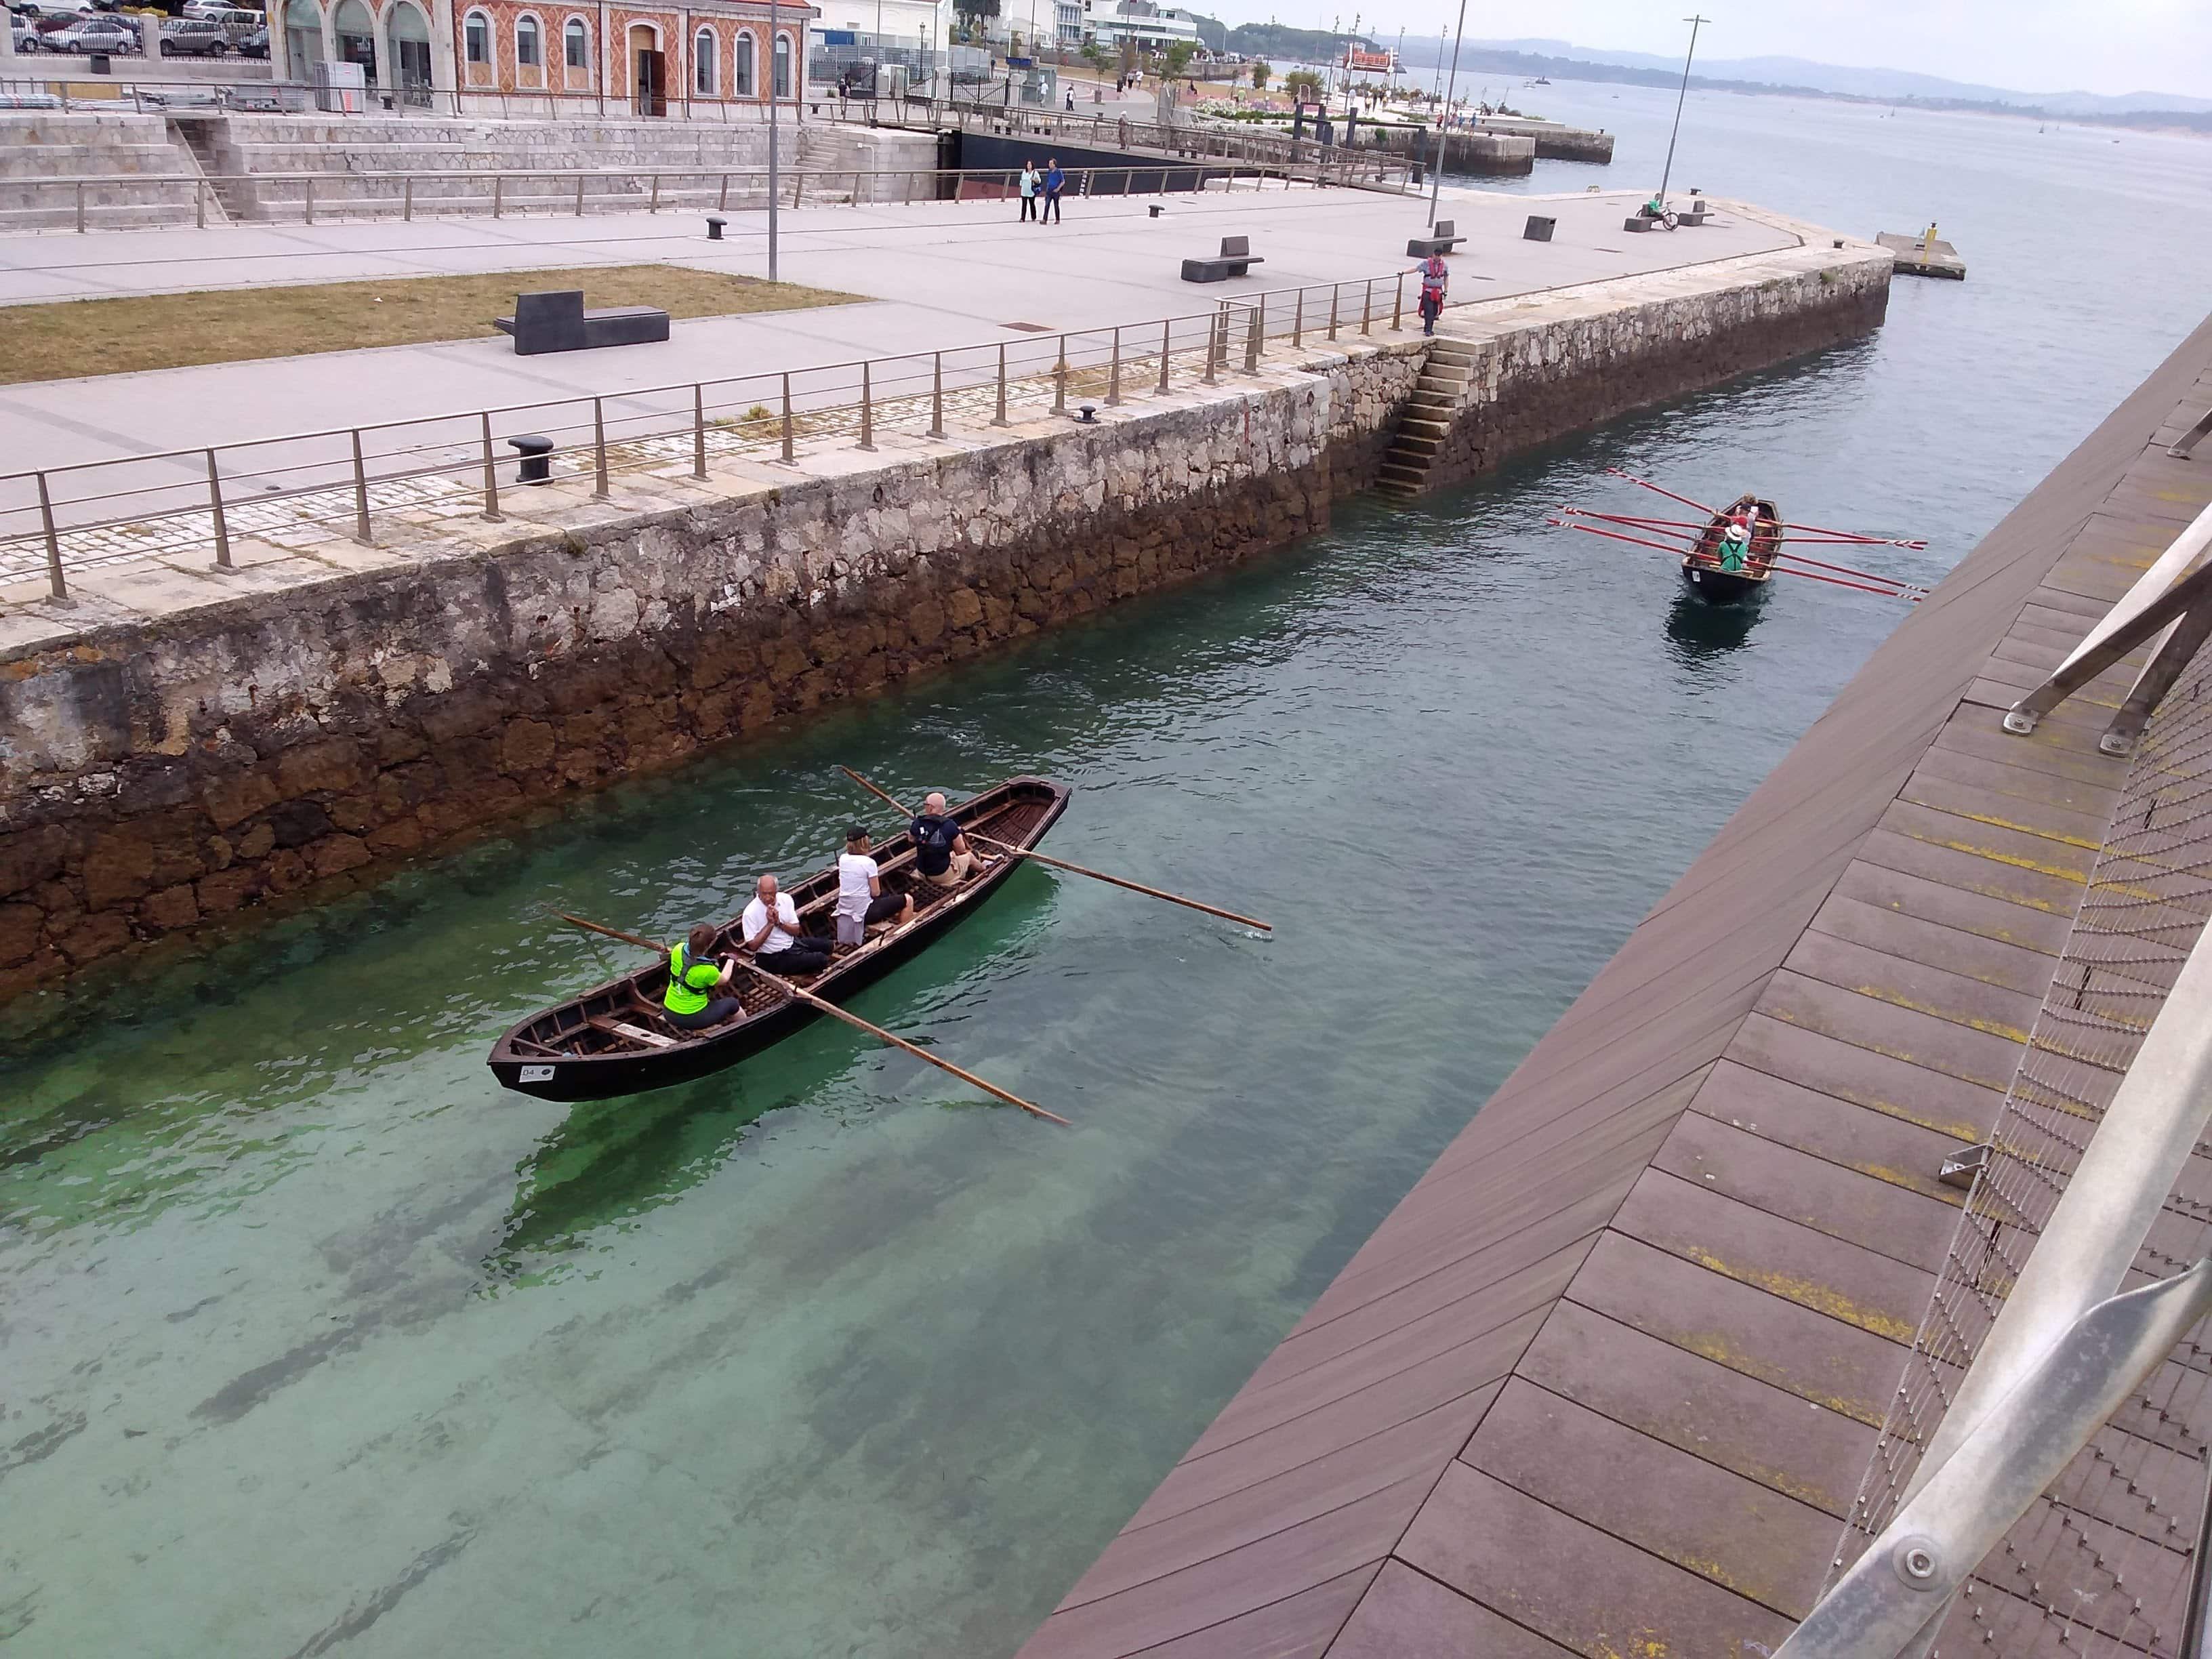 Currachs in the dock of Gamazo (Santander)